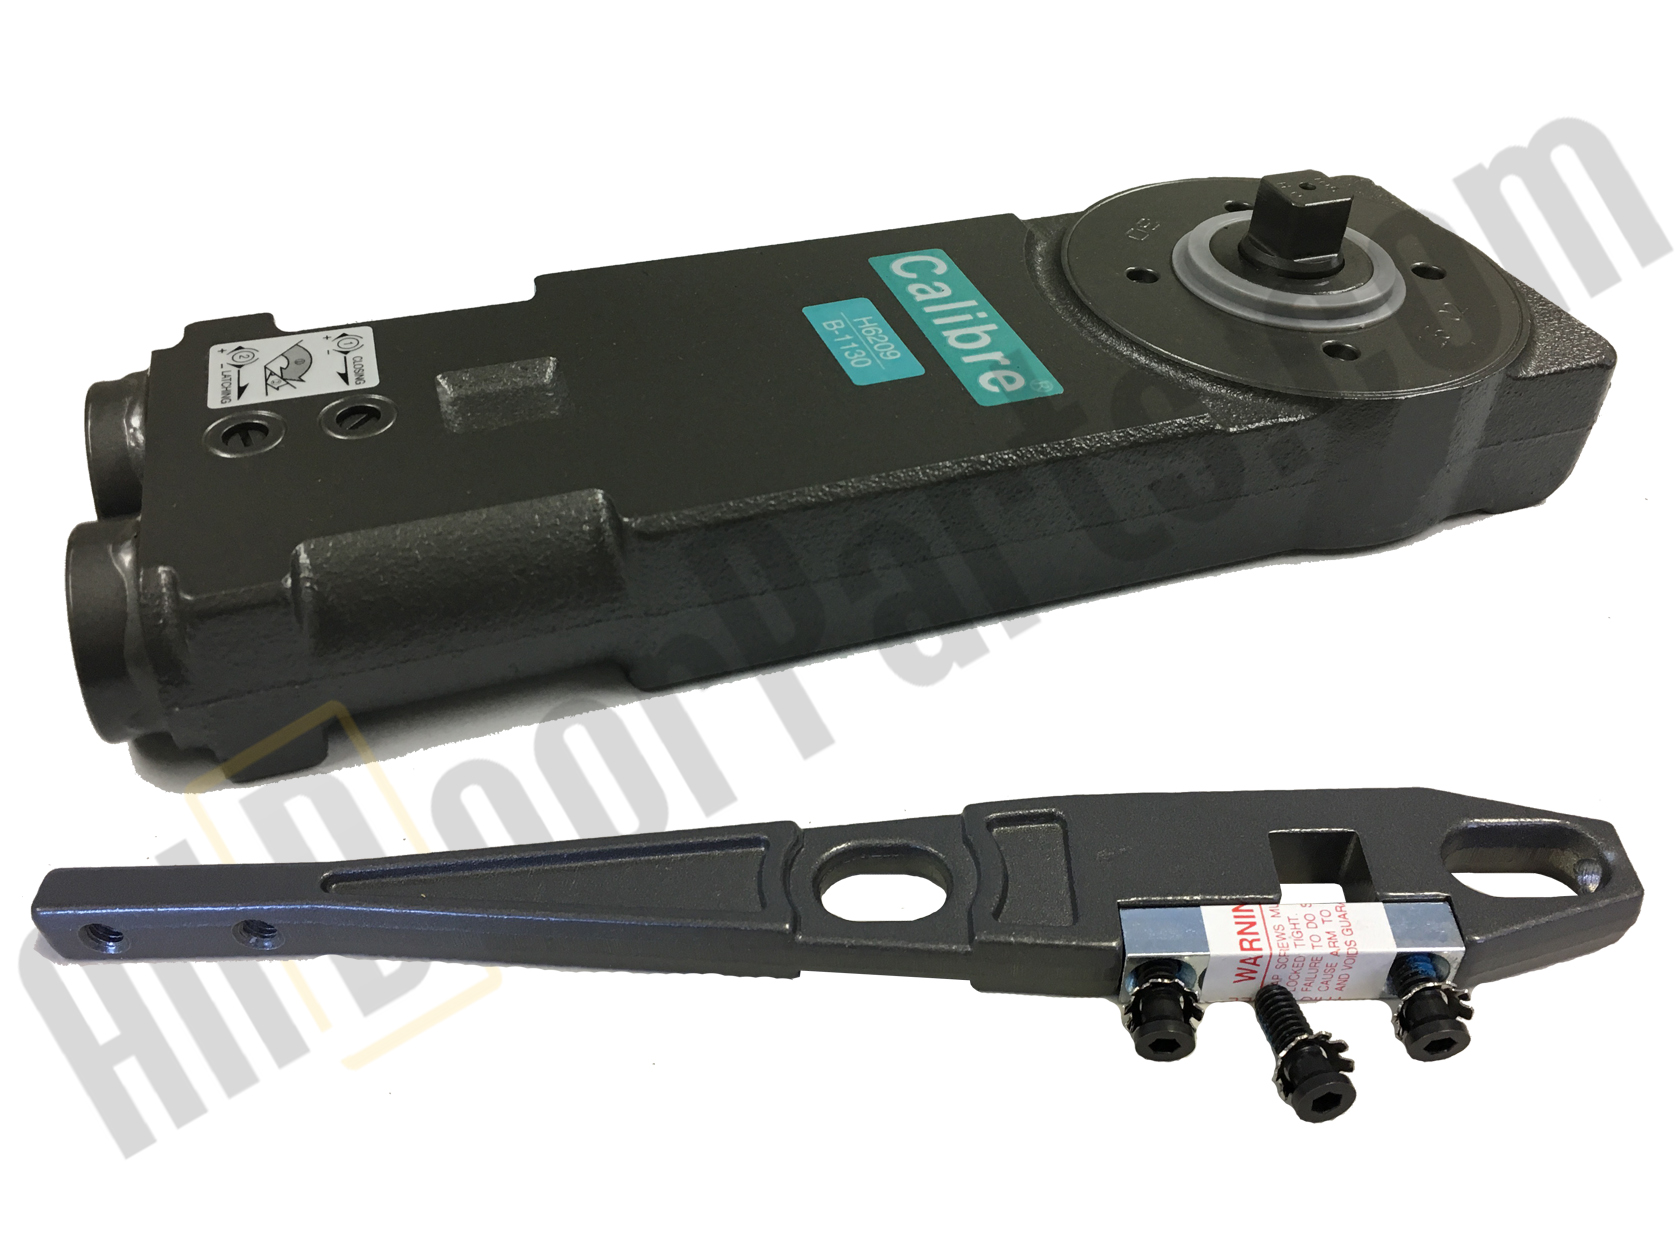 Calibre - CA2220 - Overhead Concealed Closer - Light Spring Tension - 105* Back Stop with Hold-Open